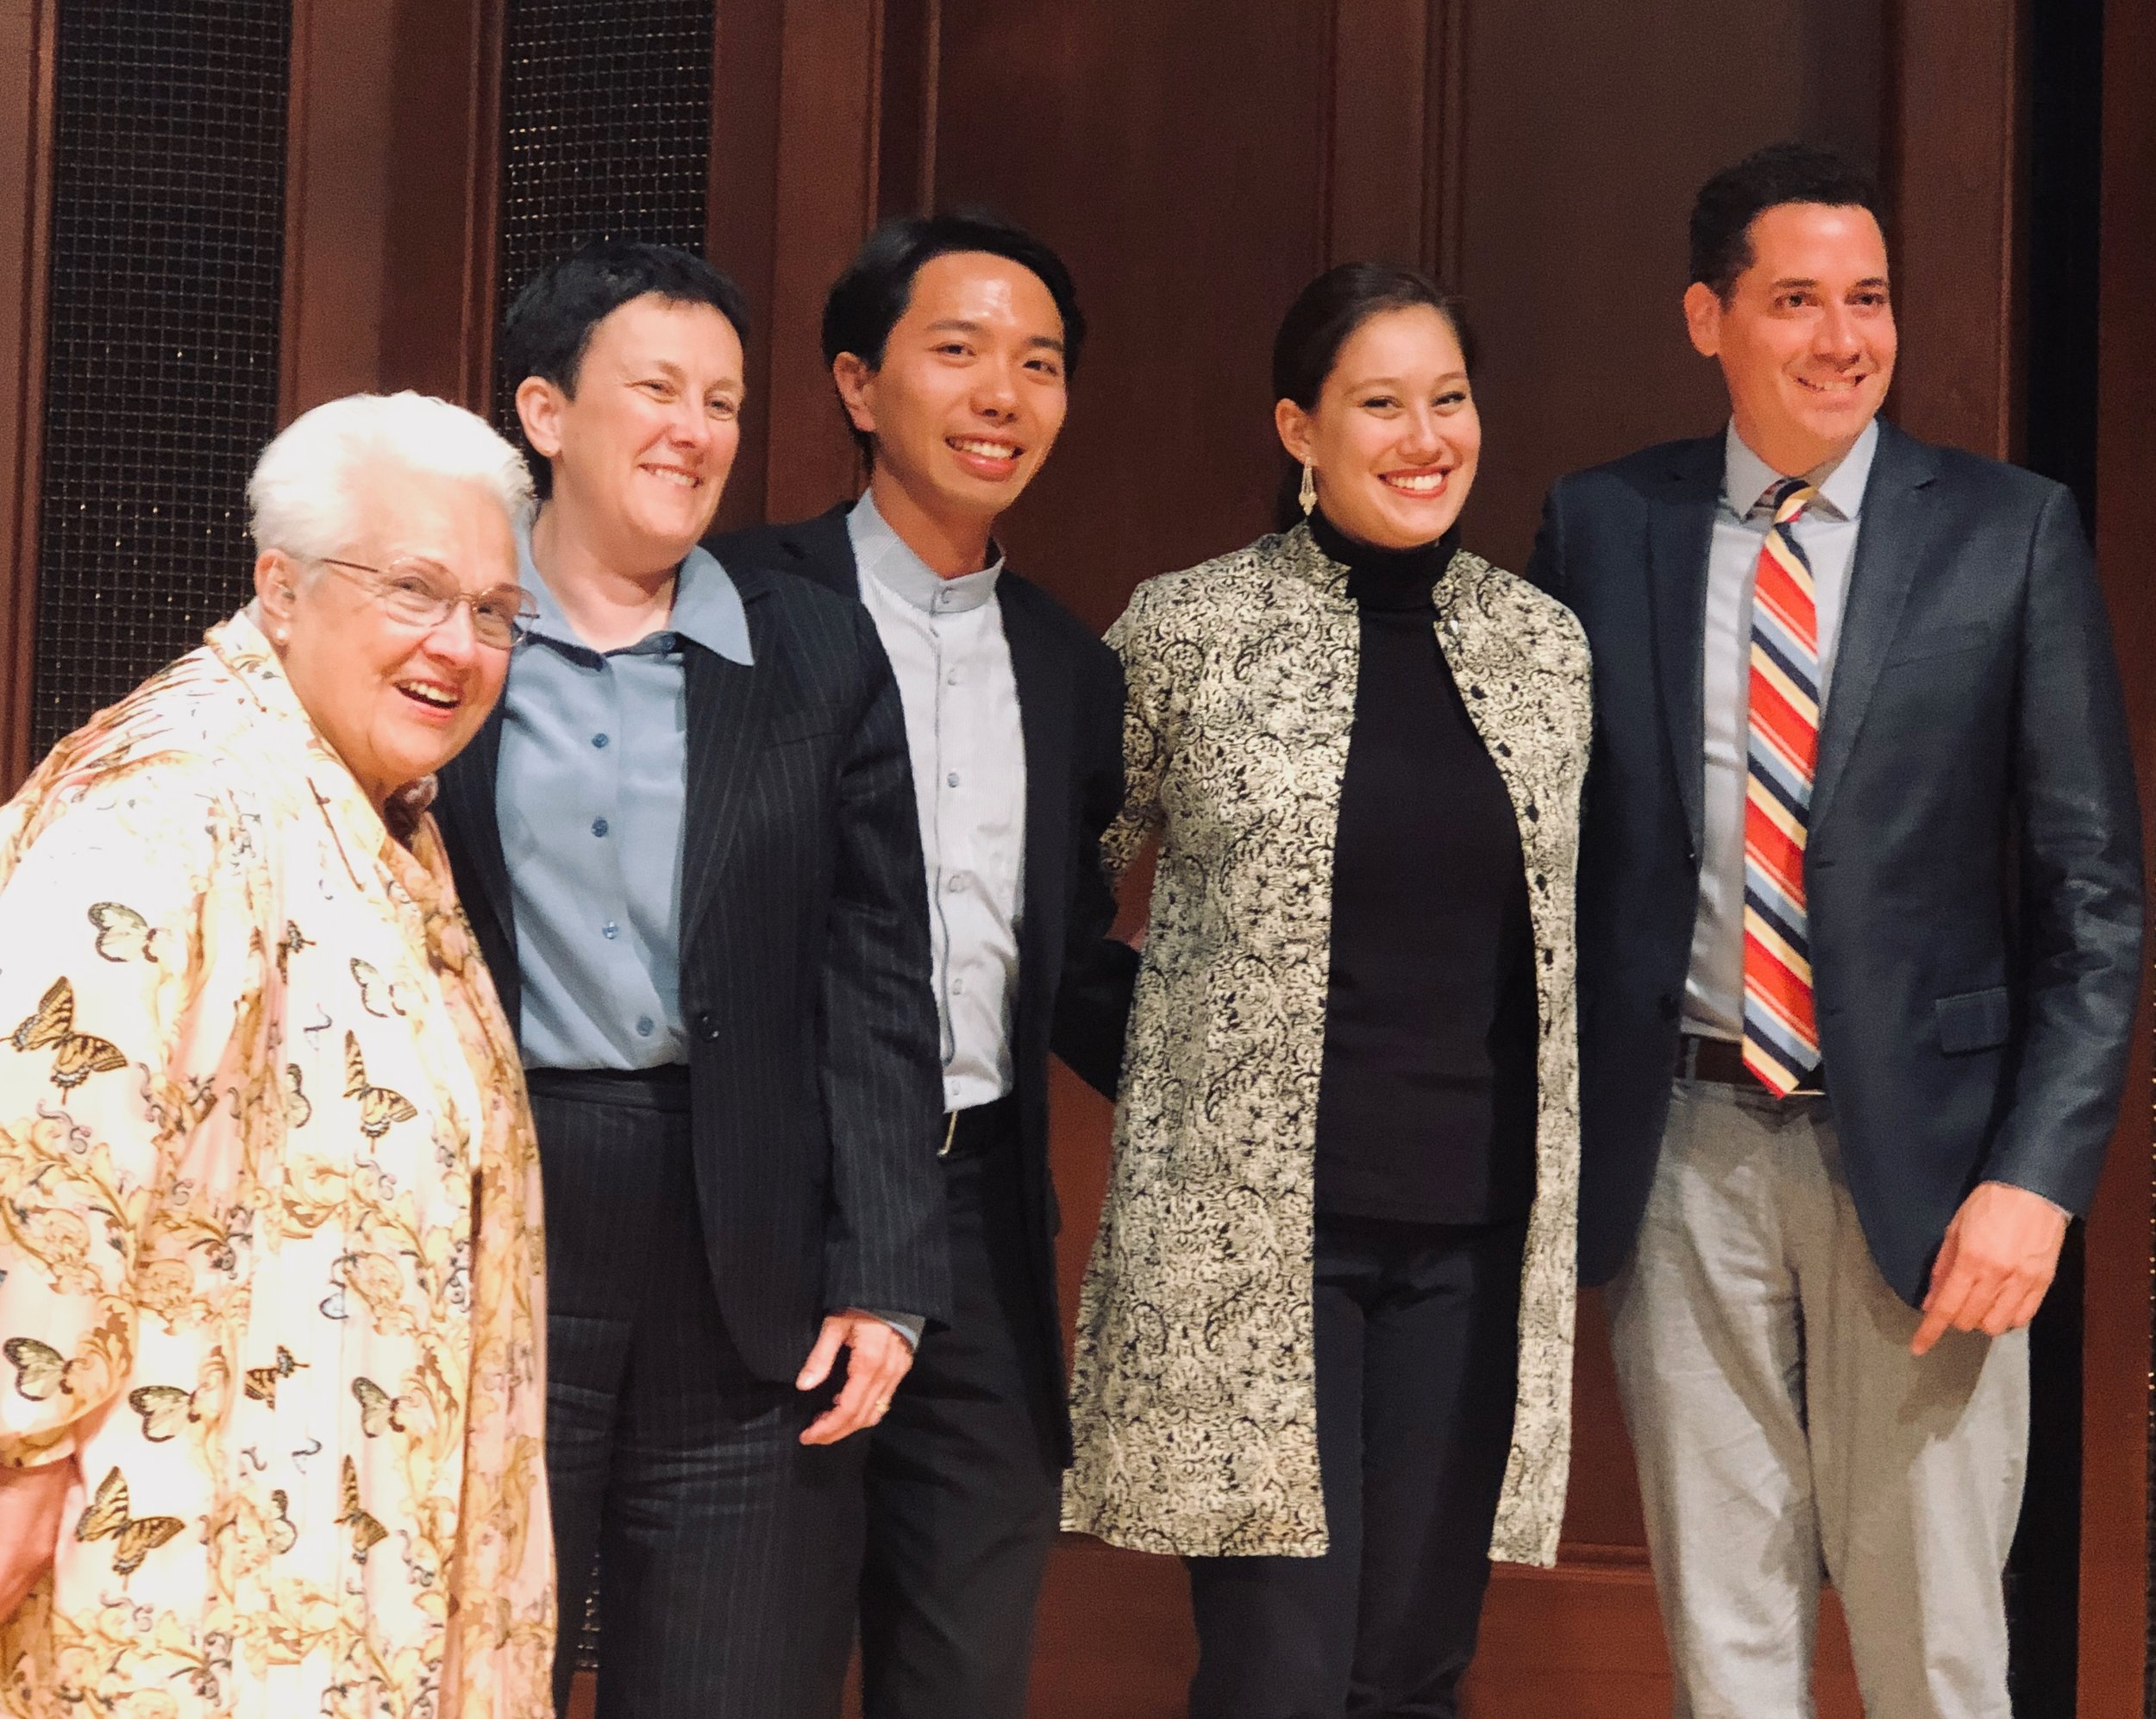 Pictured with Marilyn Horne, Jennifer Higdon, Chien-Lin Lu and Michael Heaston after winning the 2019 Marilyn Horne Song Competition.  Photo Credit: Bob Weinman 2019.